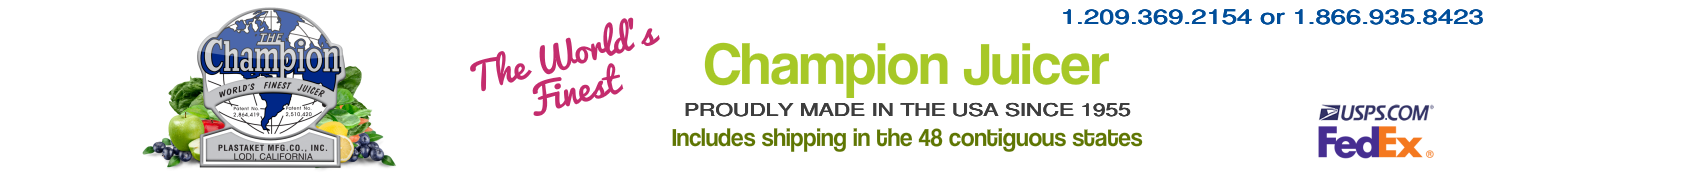 Official Champion Juicer Website